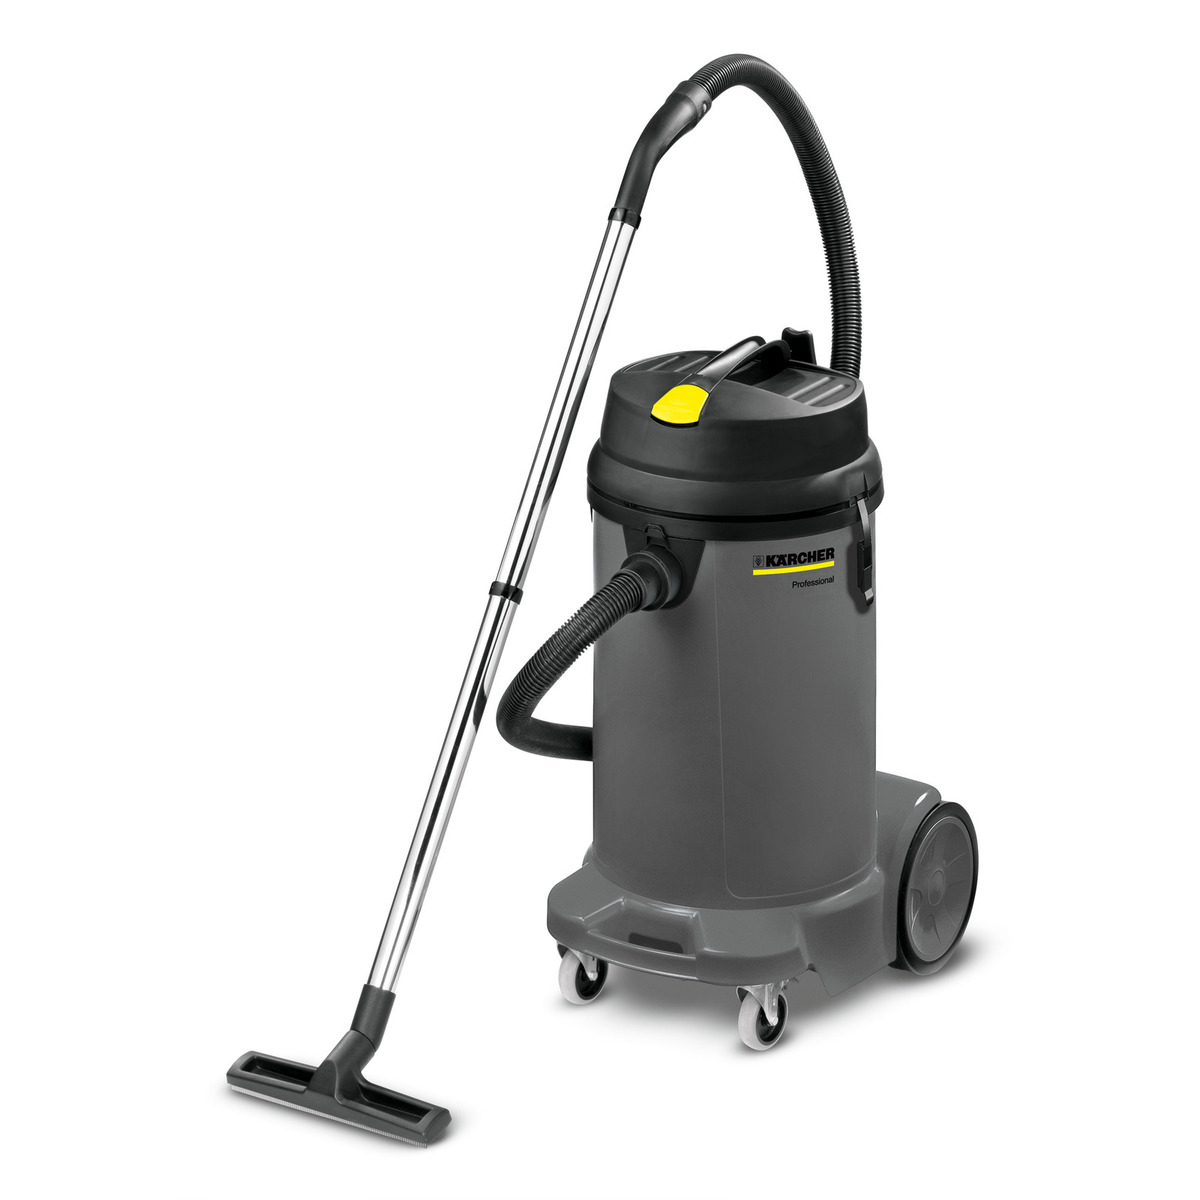 Karcher Standard Type Filter Wet & Dry Vacuum Cleaner NT 48/1